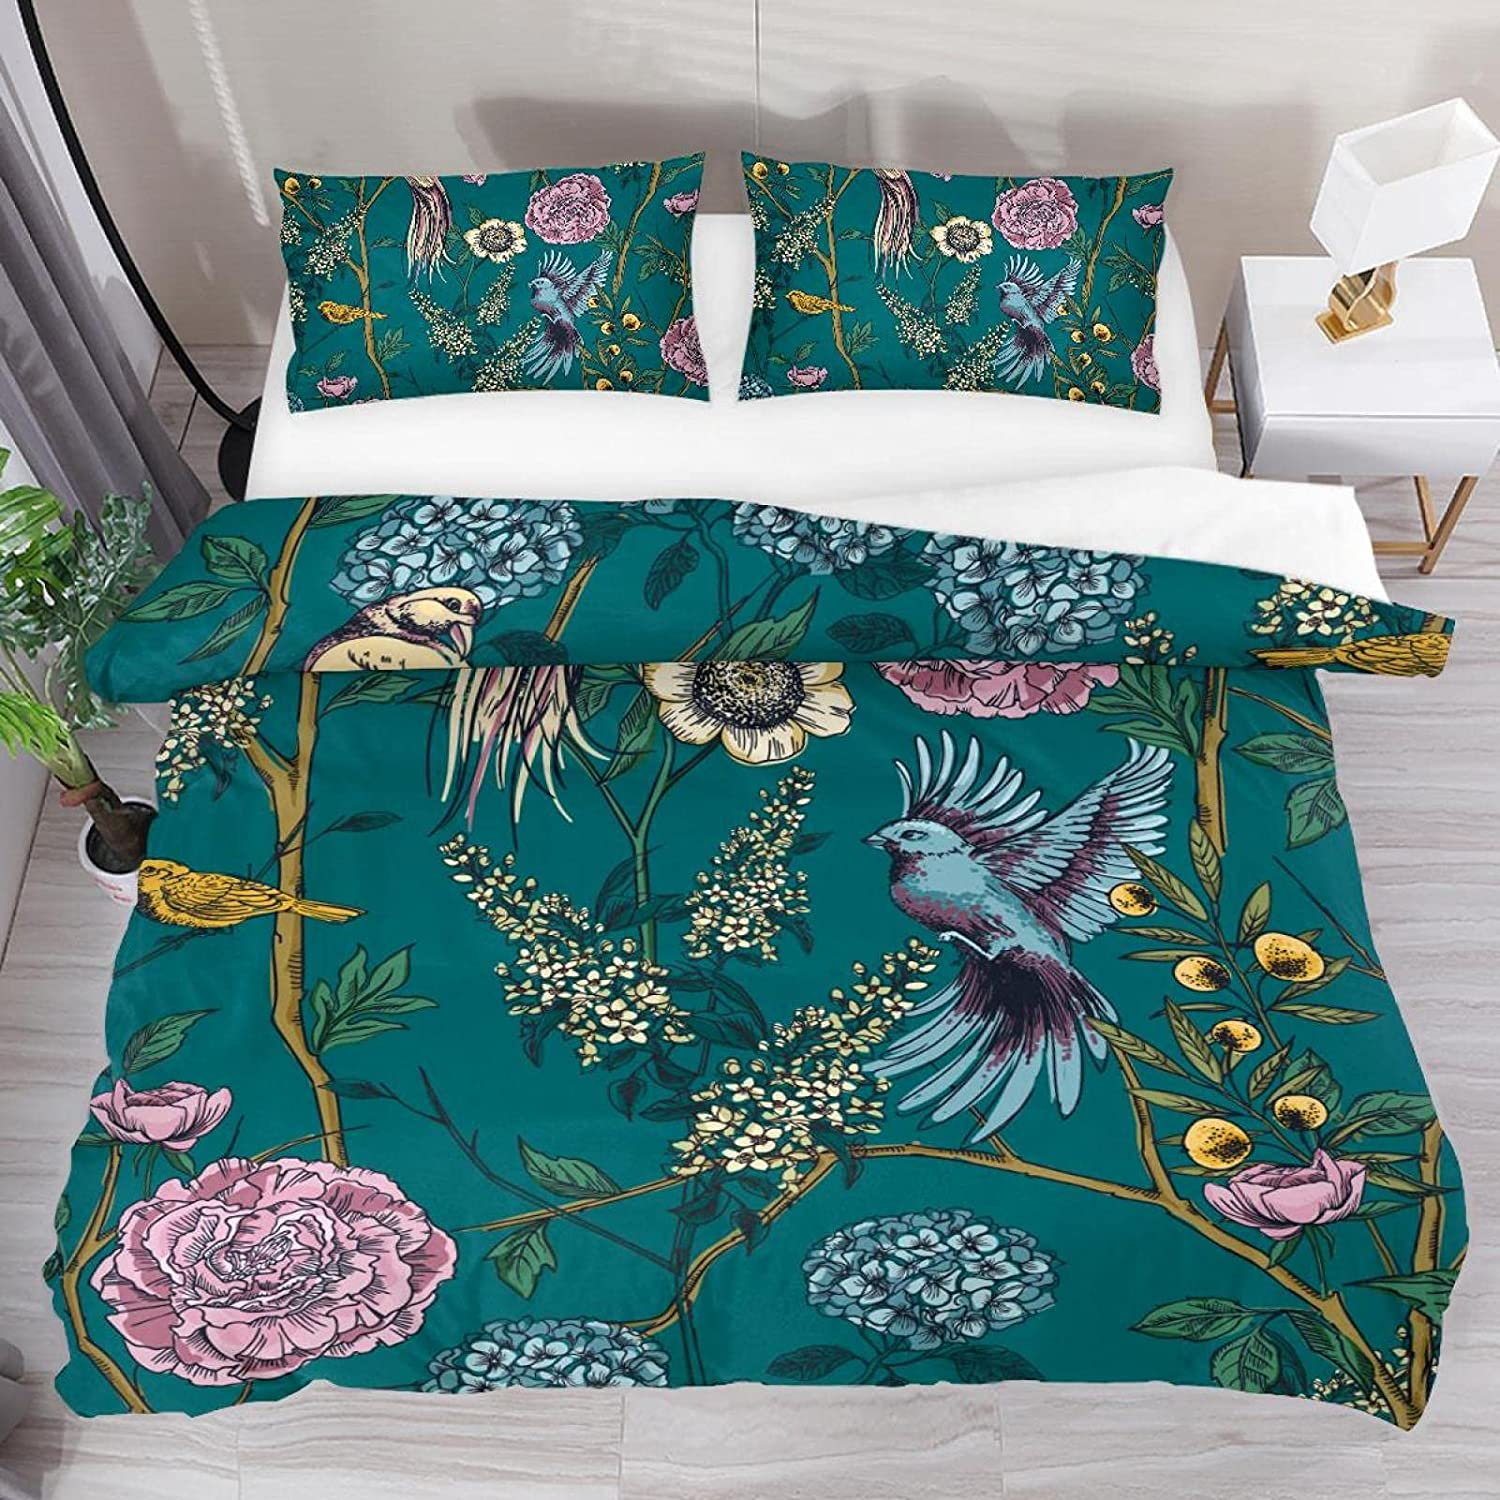 Twin Duvet Covers Max 55% OFF Set with Closure Zipper Retro Soft New Shipping Free Breathable